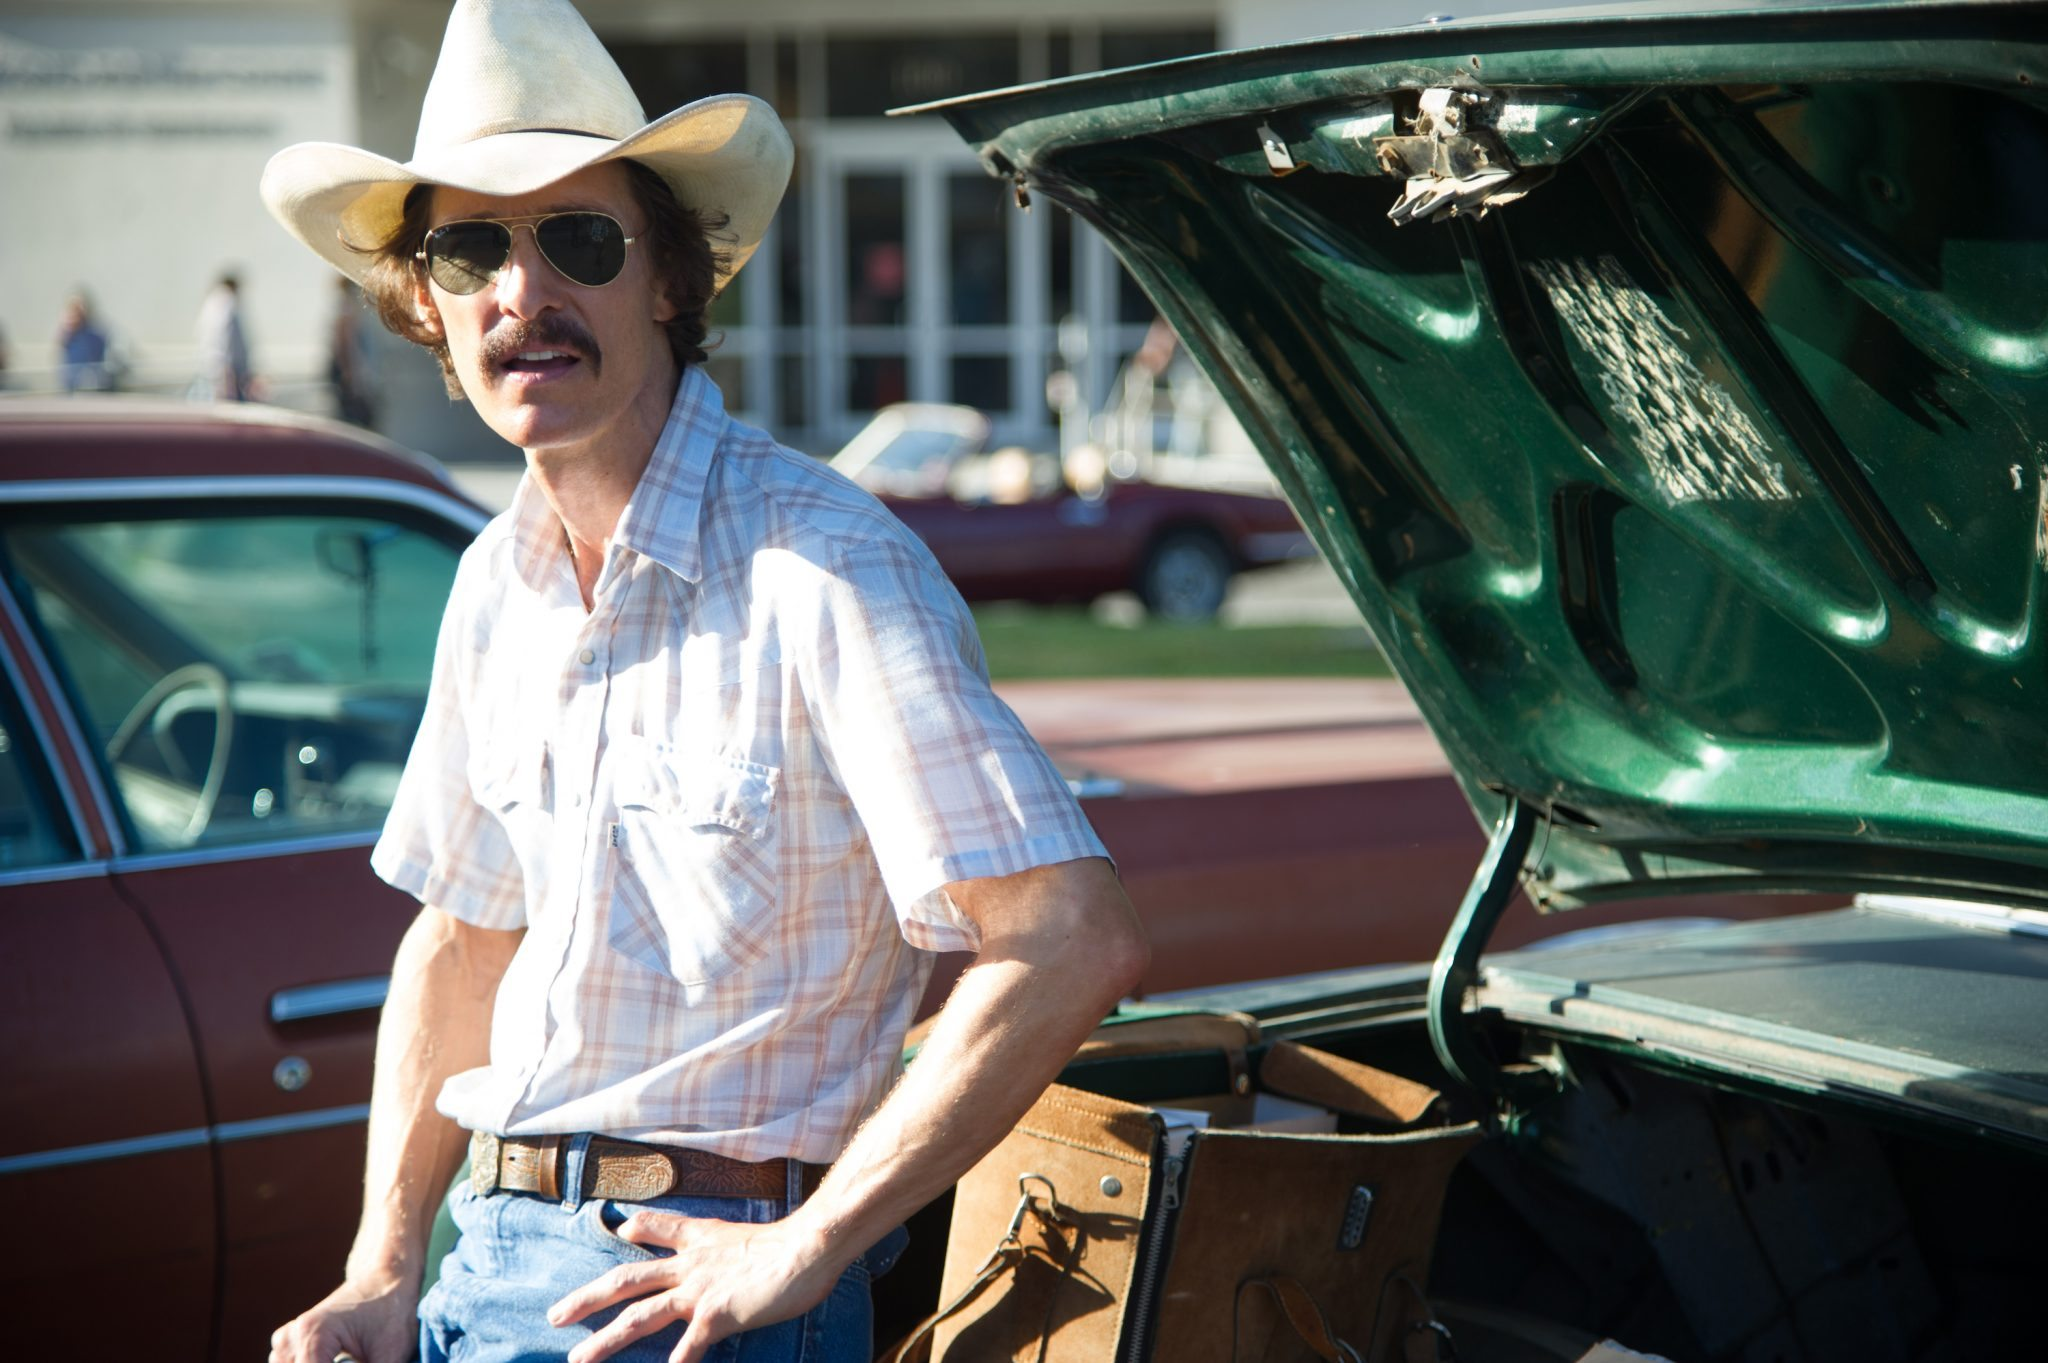 Dallas Buyer Club Disses HIV